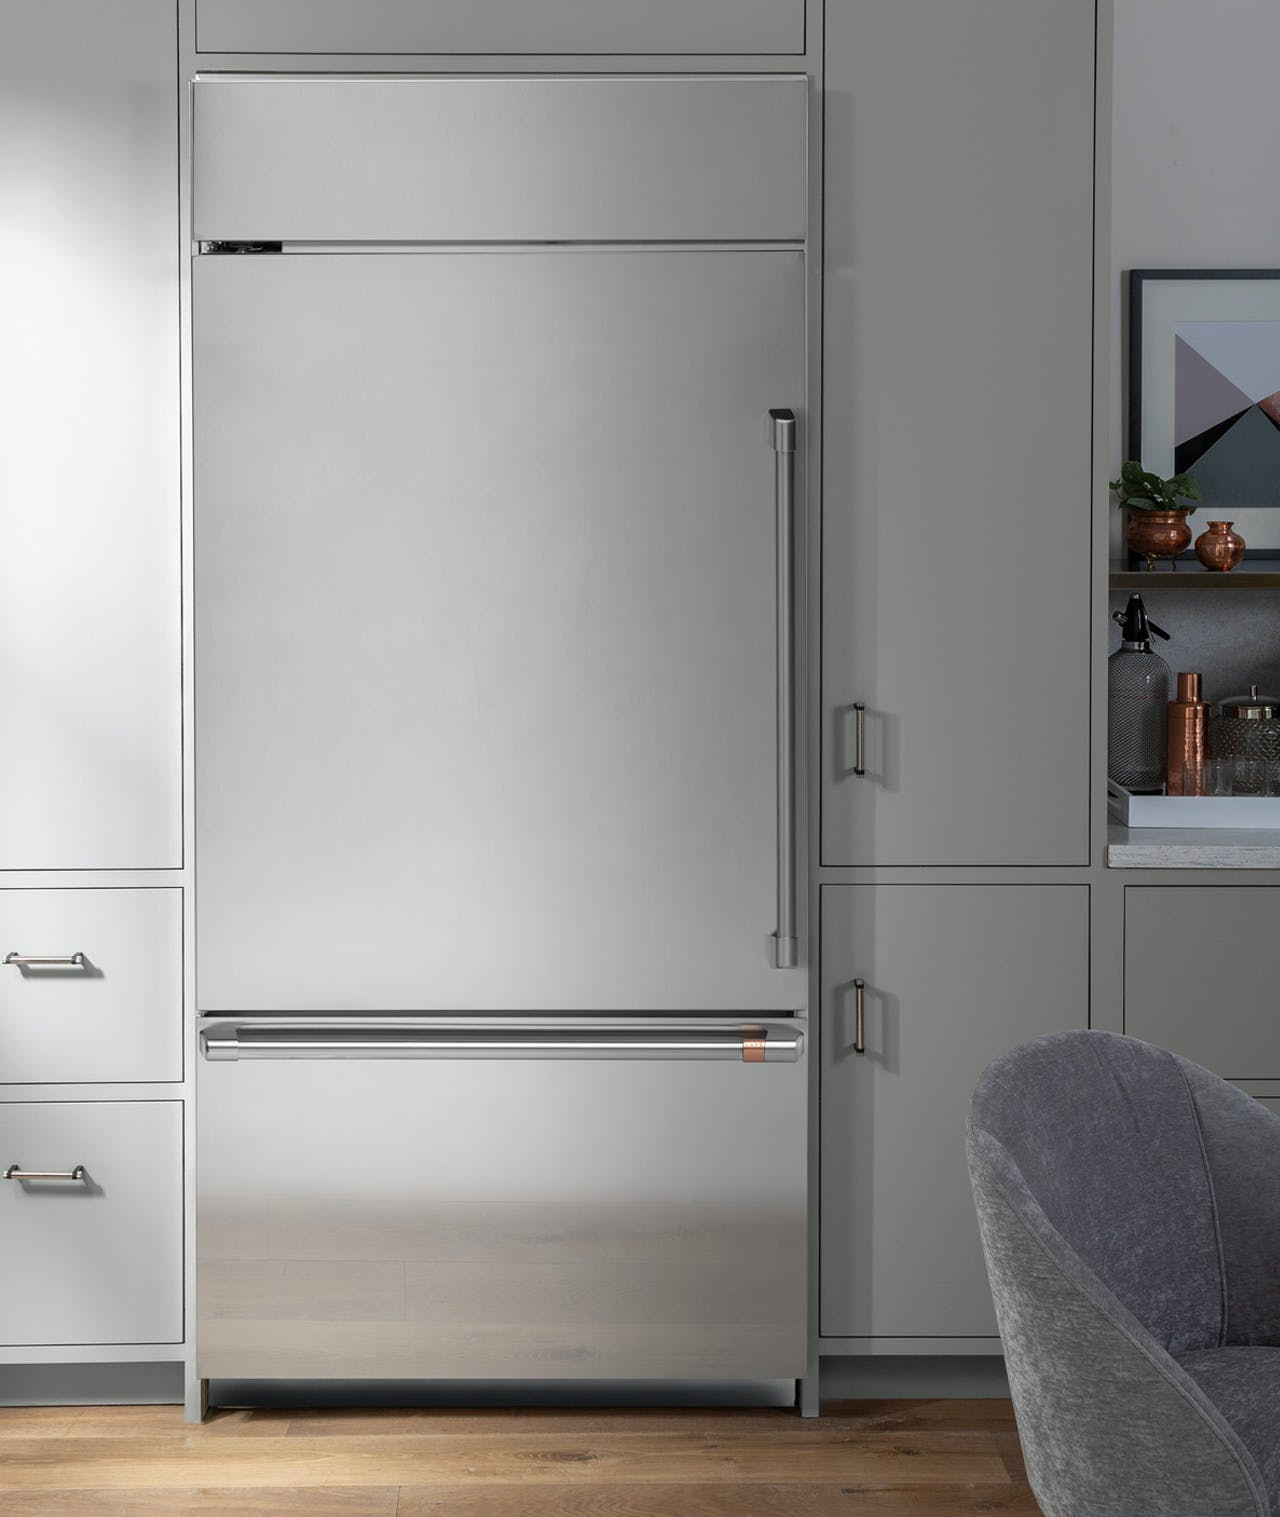 stainless steel built-in refrigerator